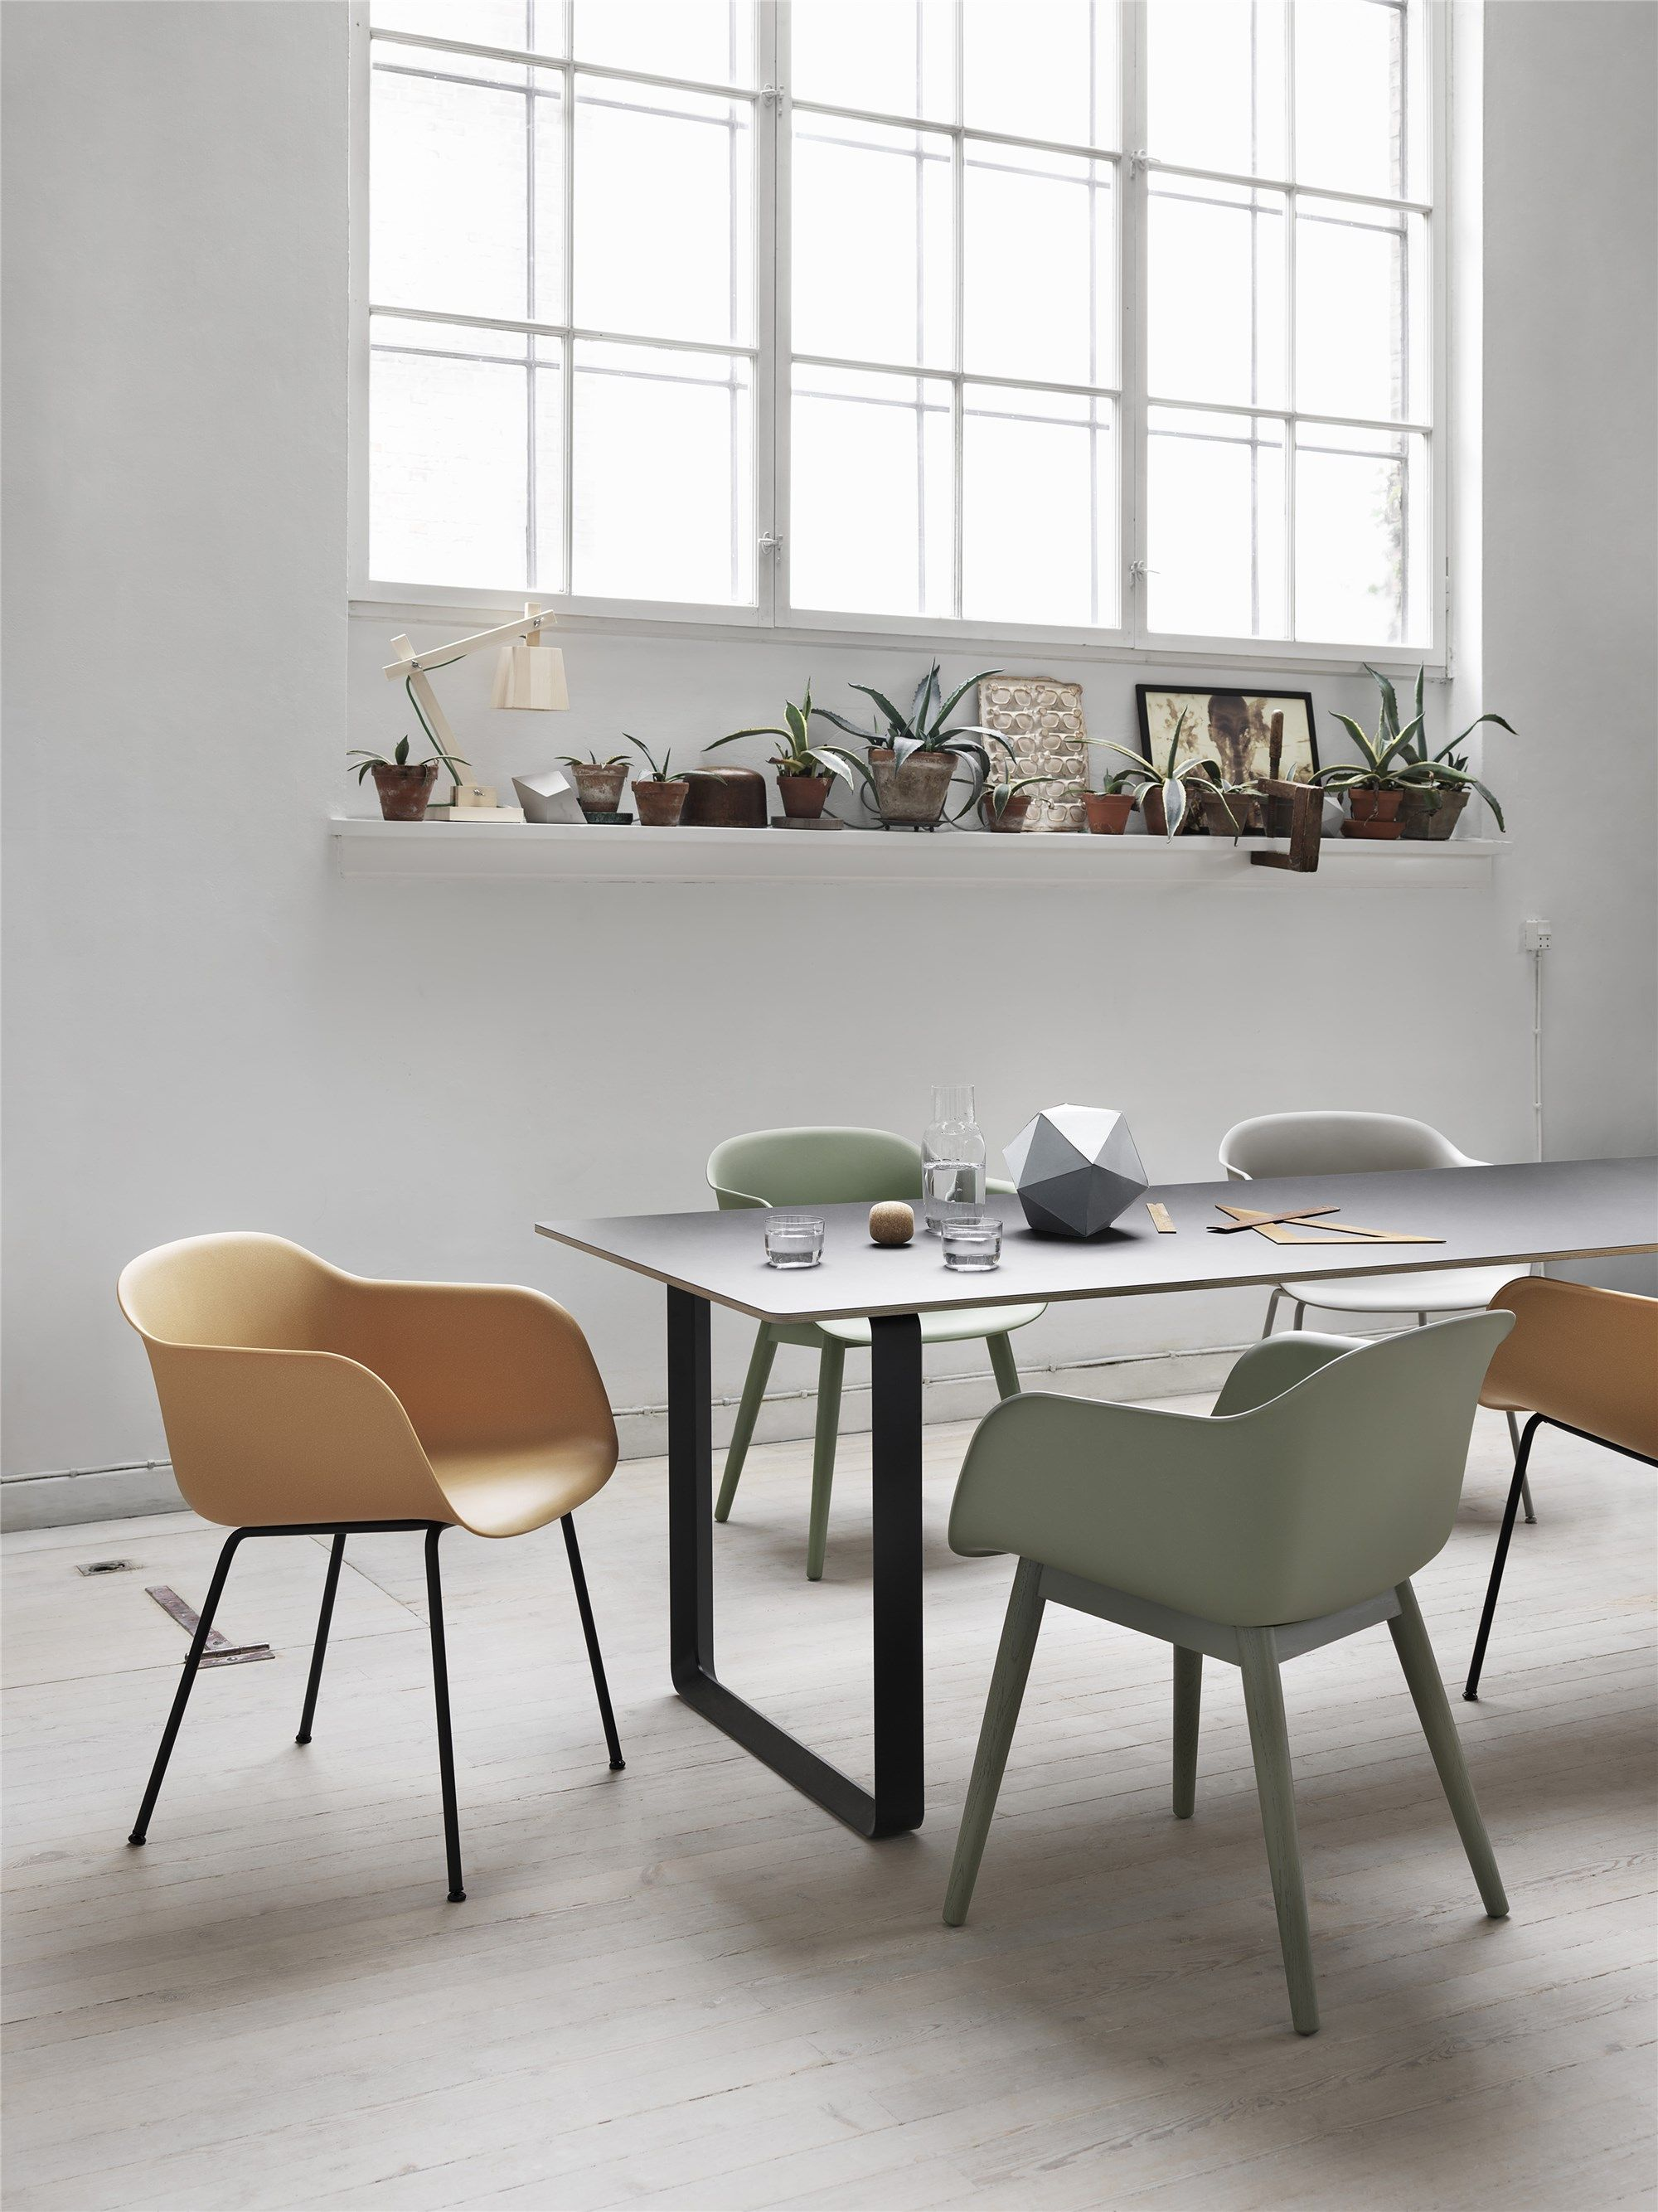 The fiber armchair designed by iskos berlin for muuto gives us dining room inspiration for every taste and color muuto scandinaviandesign livingroom